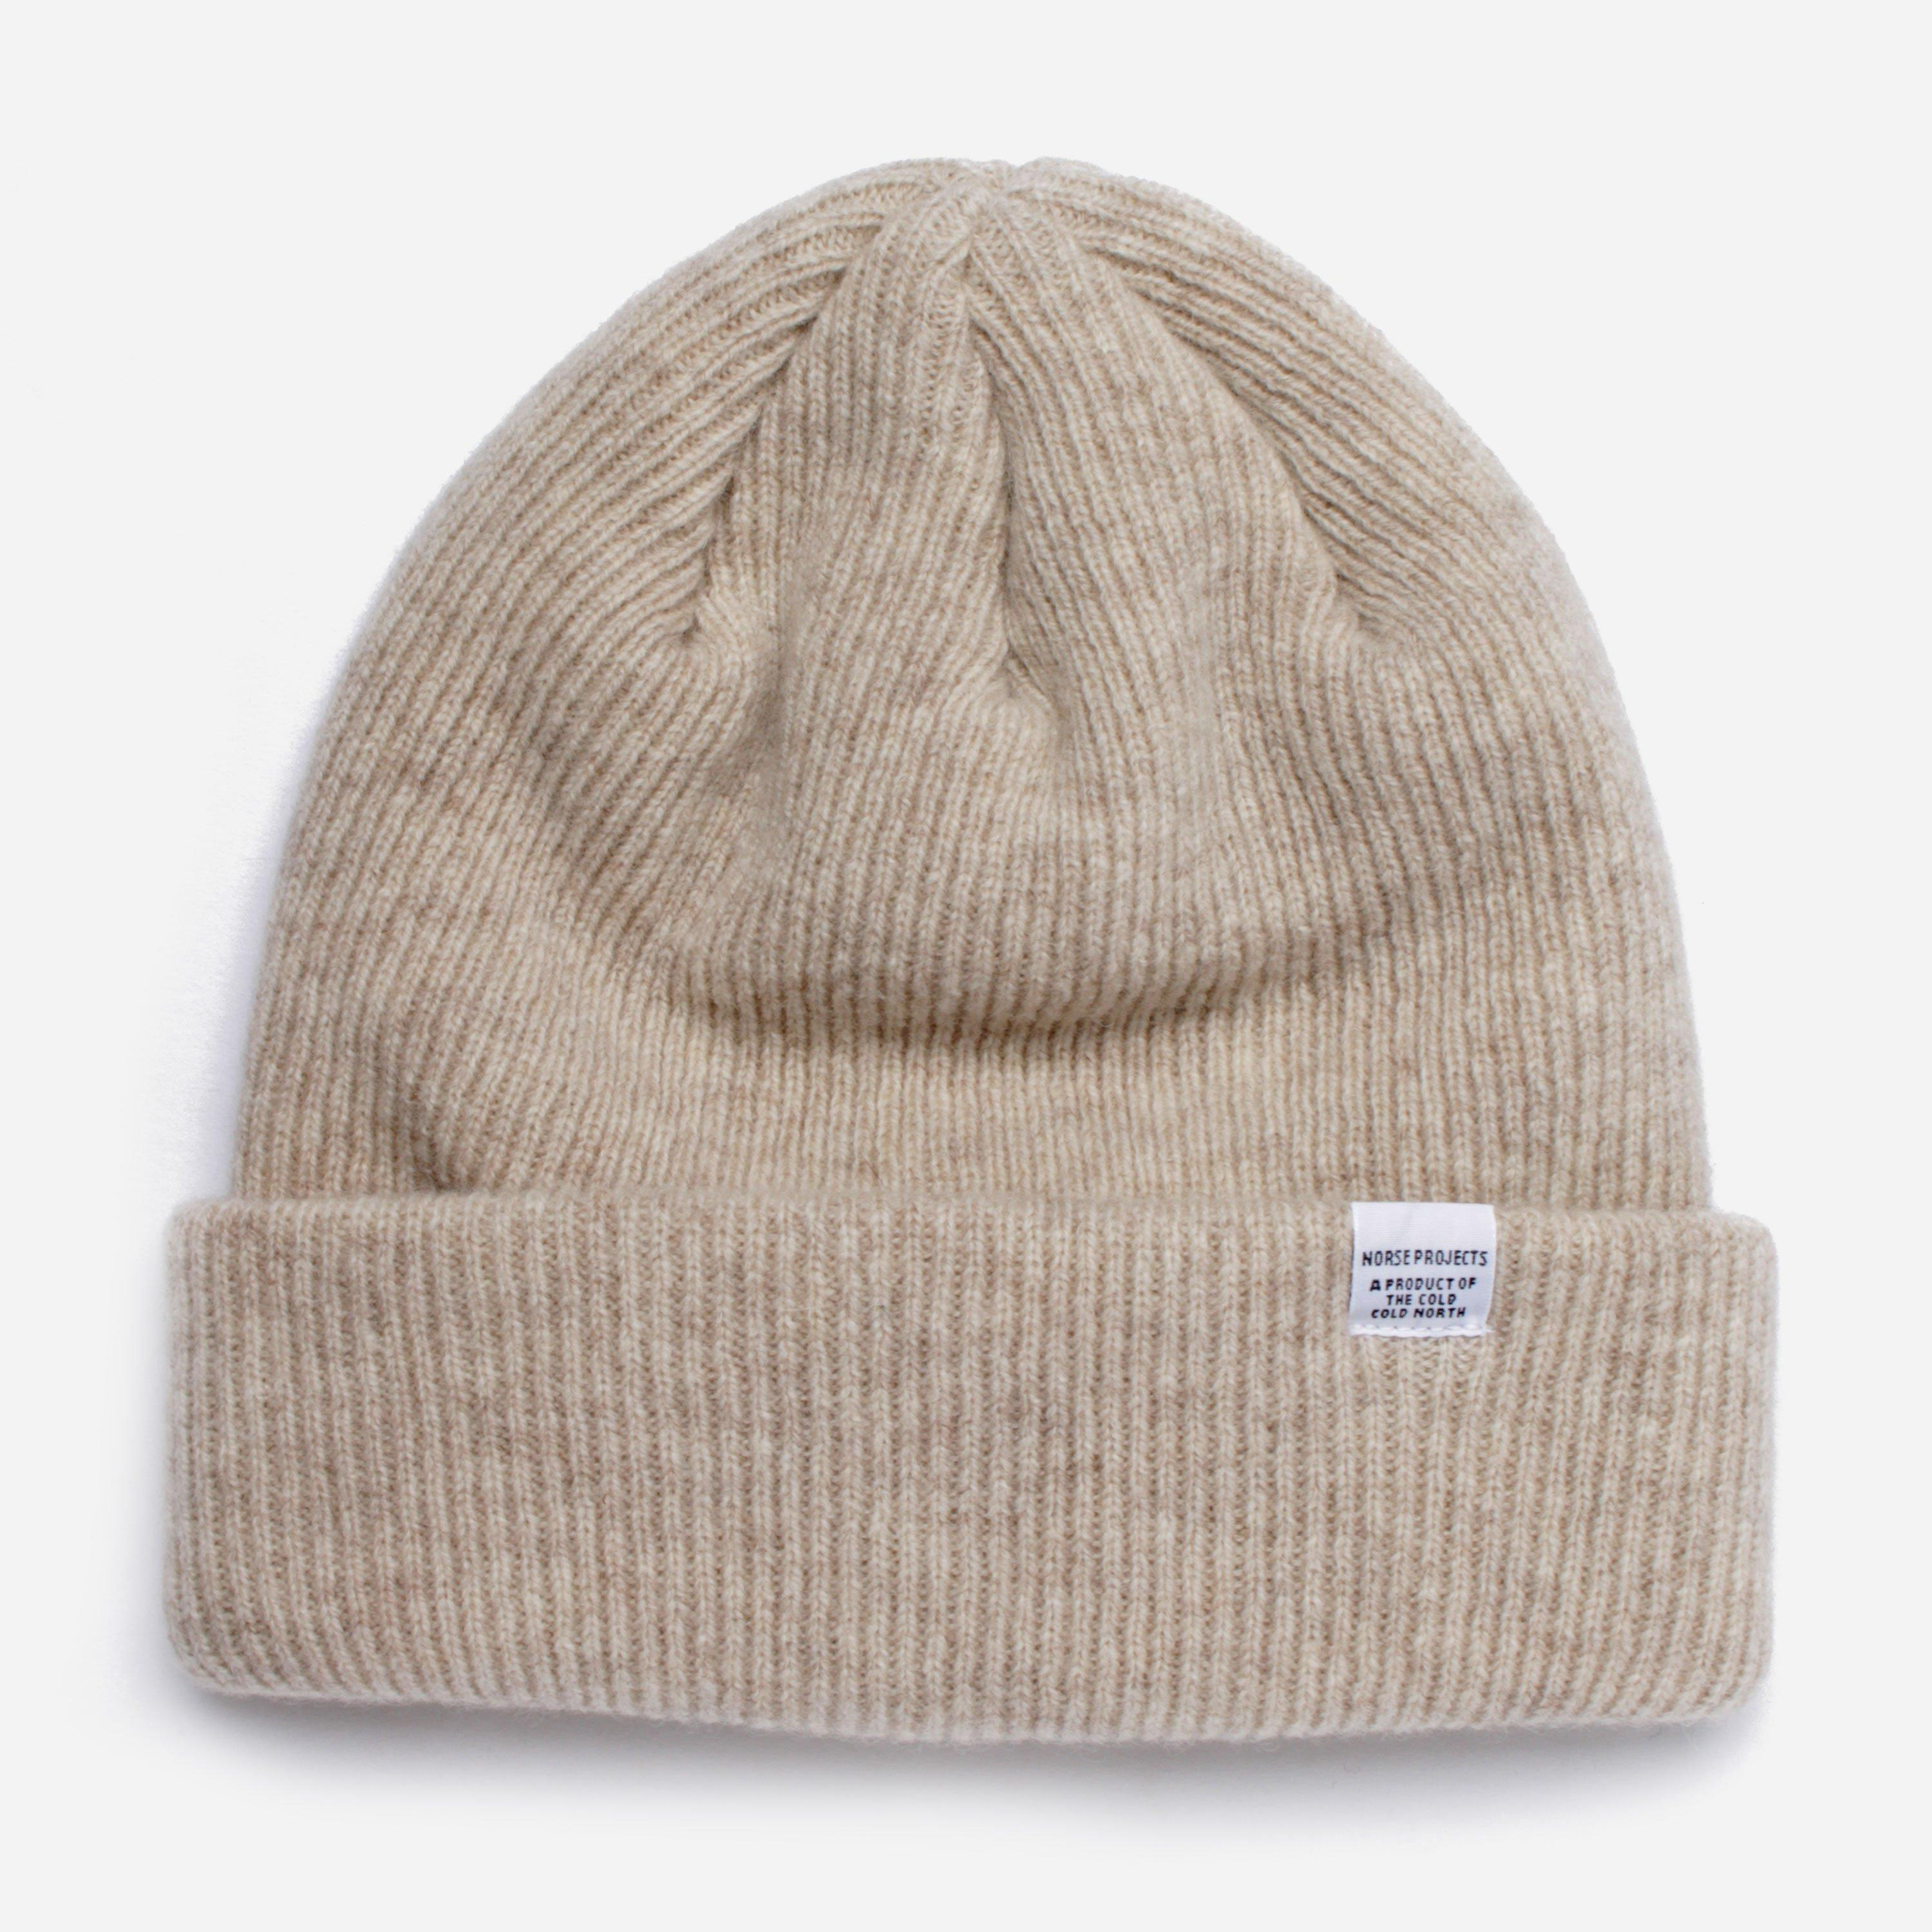 93c51979701 Norse Projects Knitted Beanie in Natural for Men - Lyst